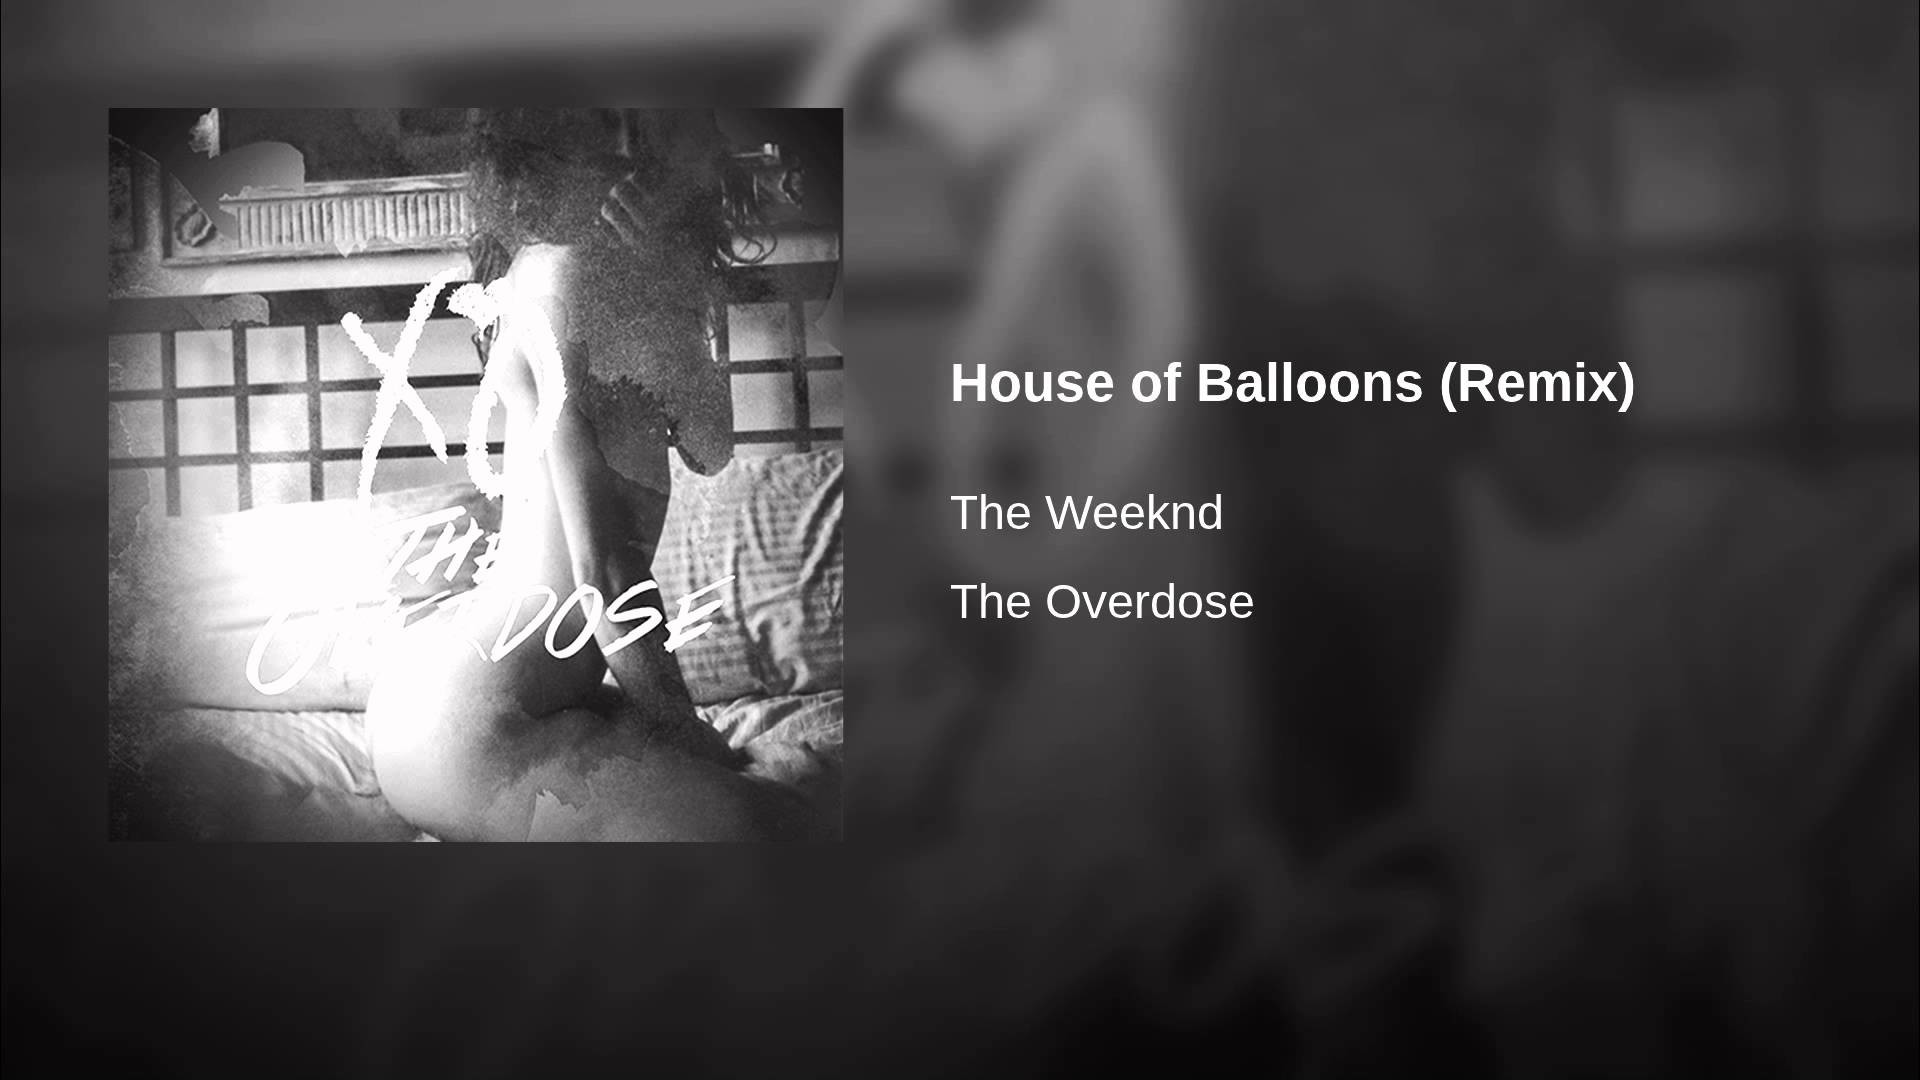 1920x1080 House of Balloons (Remix)